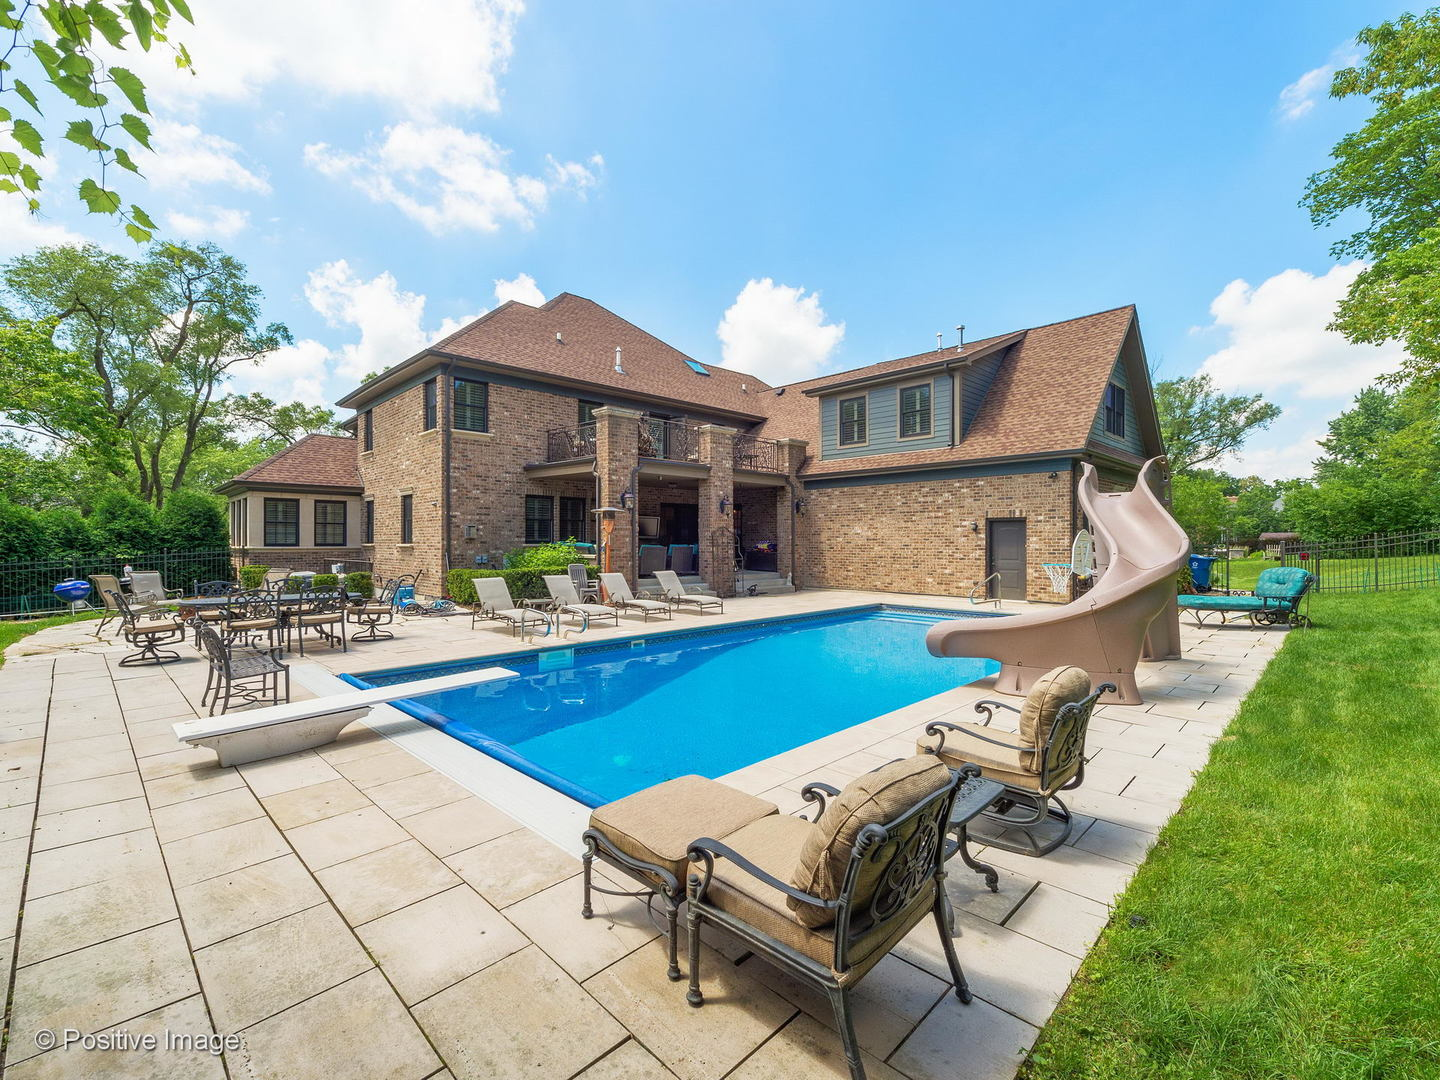 5615 Childs, Hinsdale, Illinois, 60521